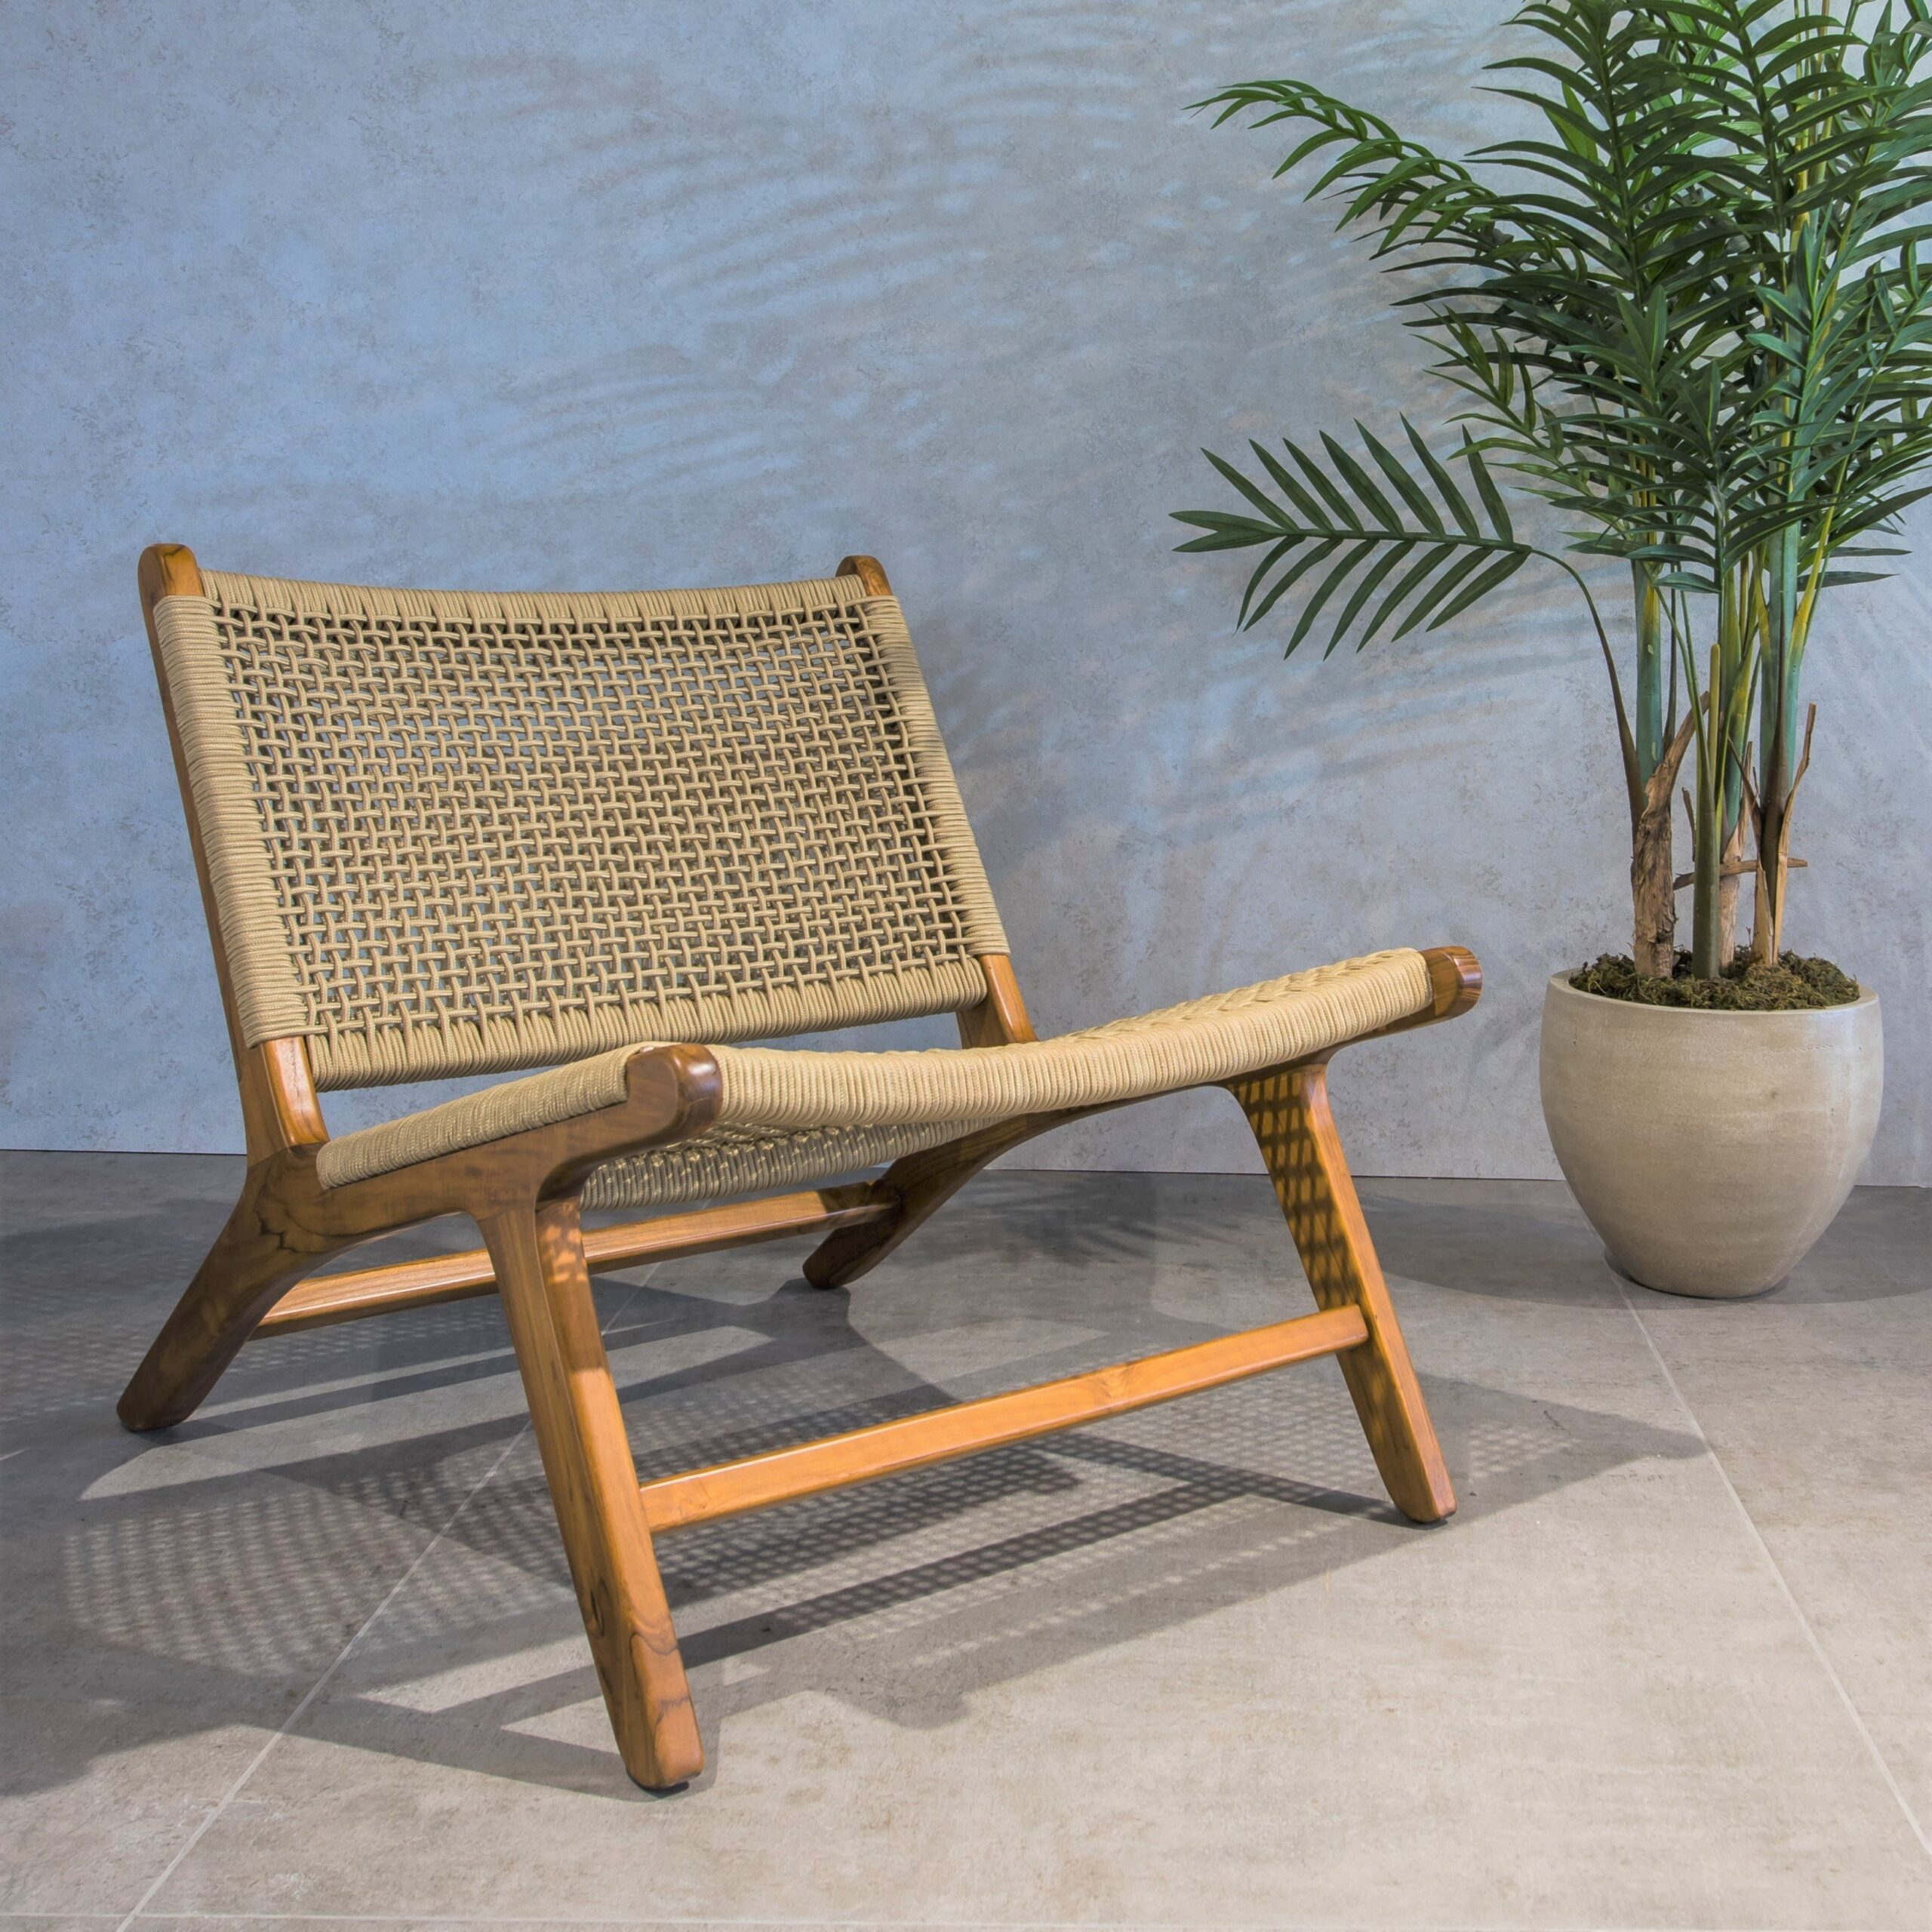 https://woodgreen.ae/wp-content/uploads/2021/10/francis-easy-chair-beige-2-scaled-2.jpg